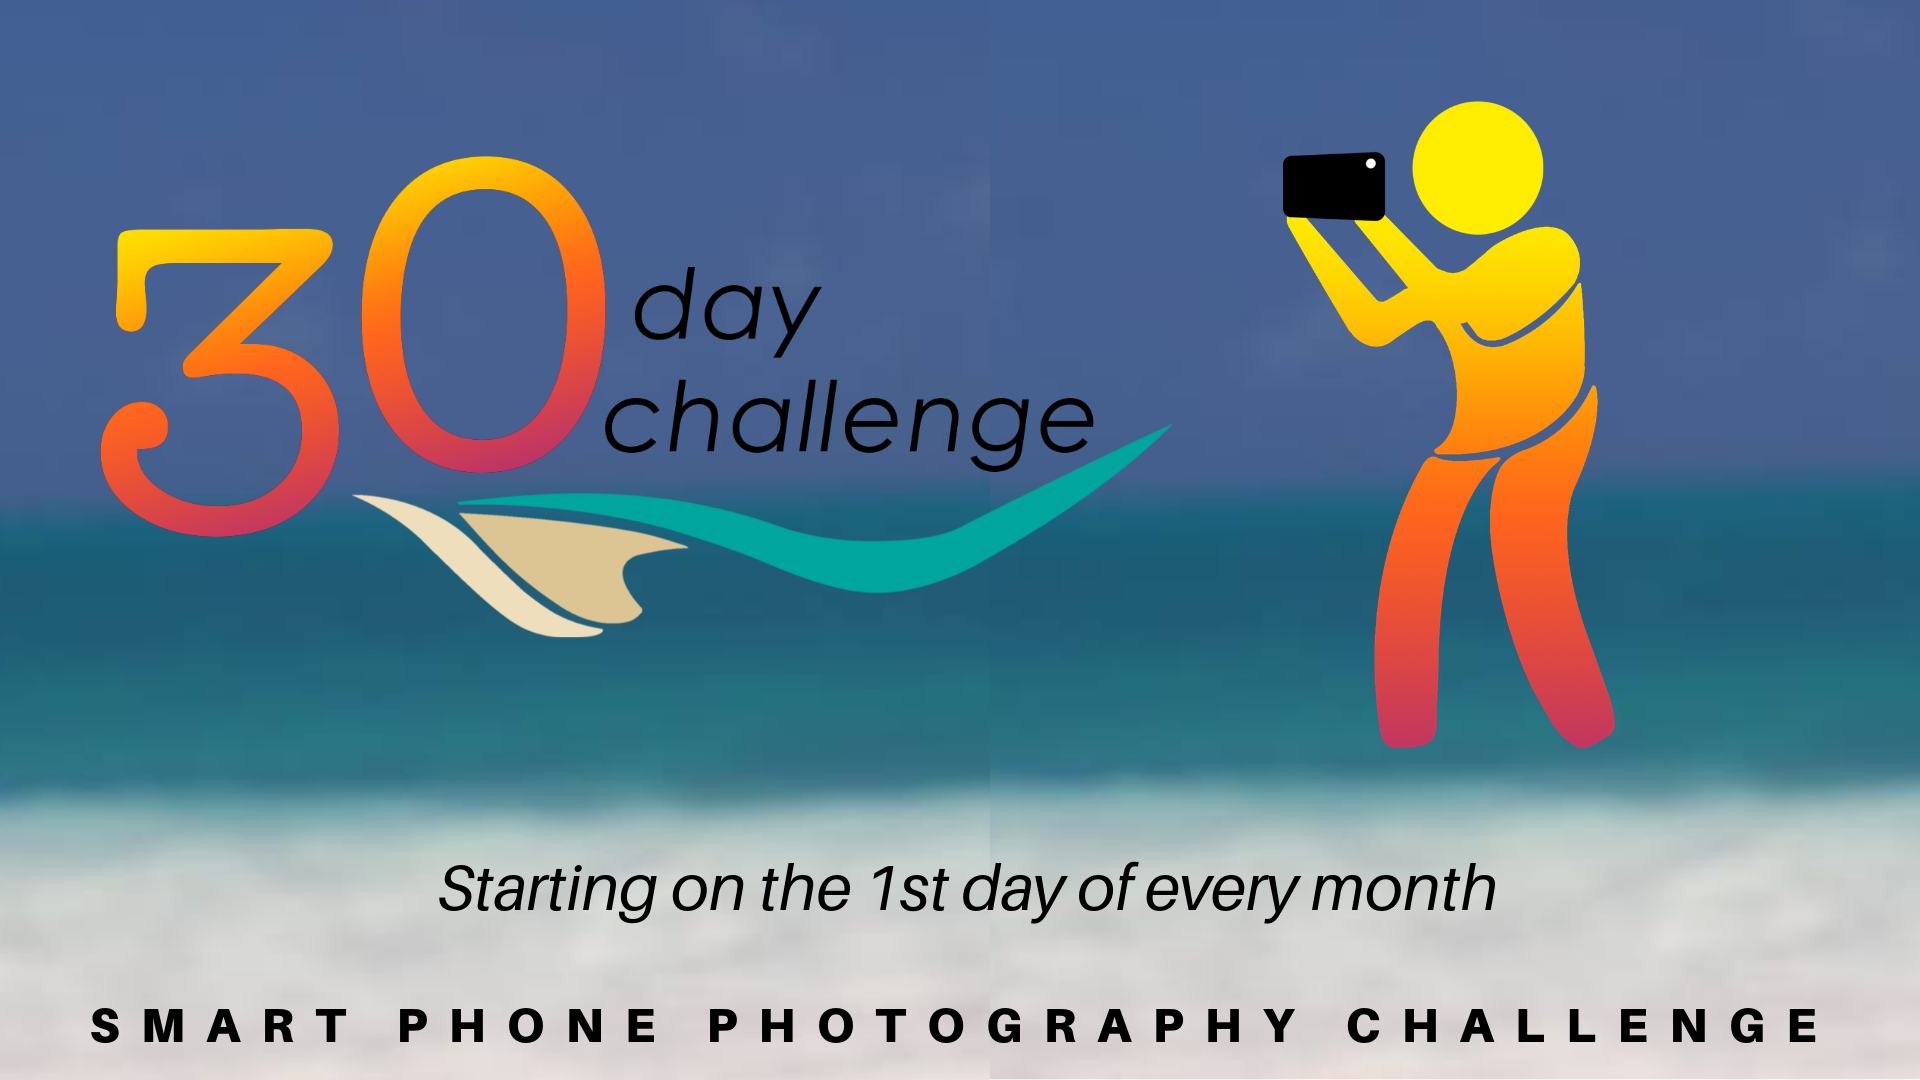 30 Day Cell Phone Photo Challenge